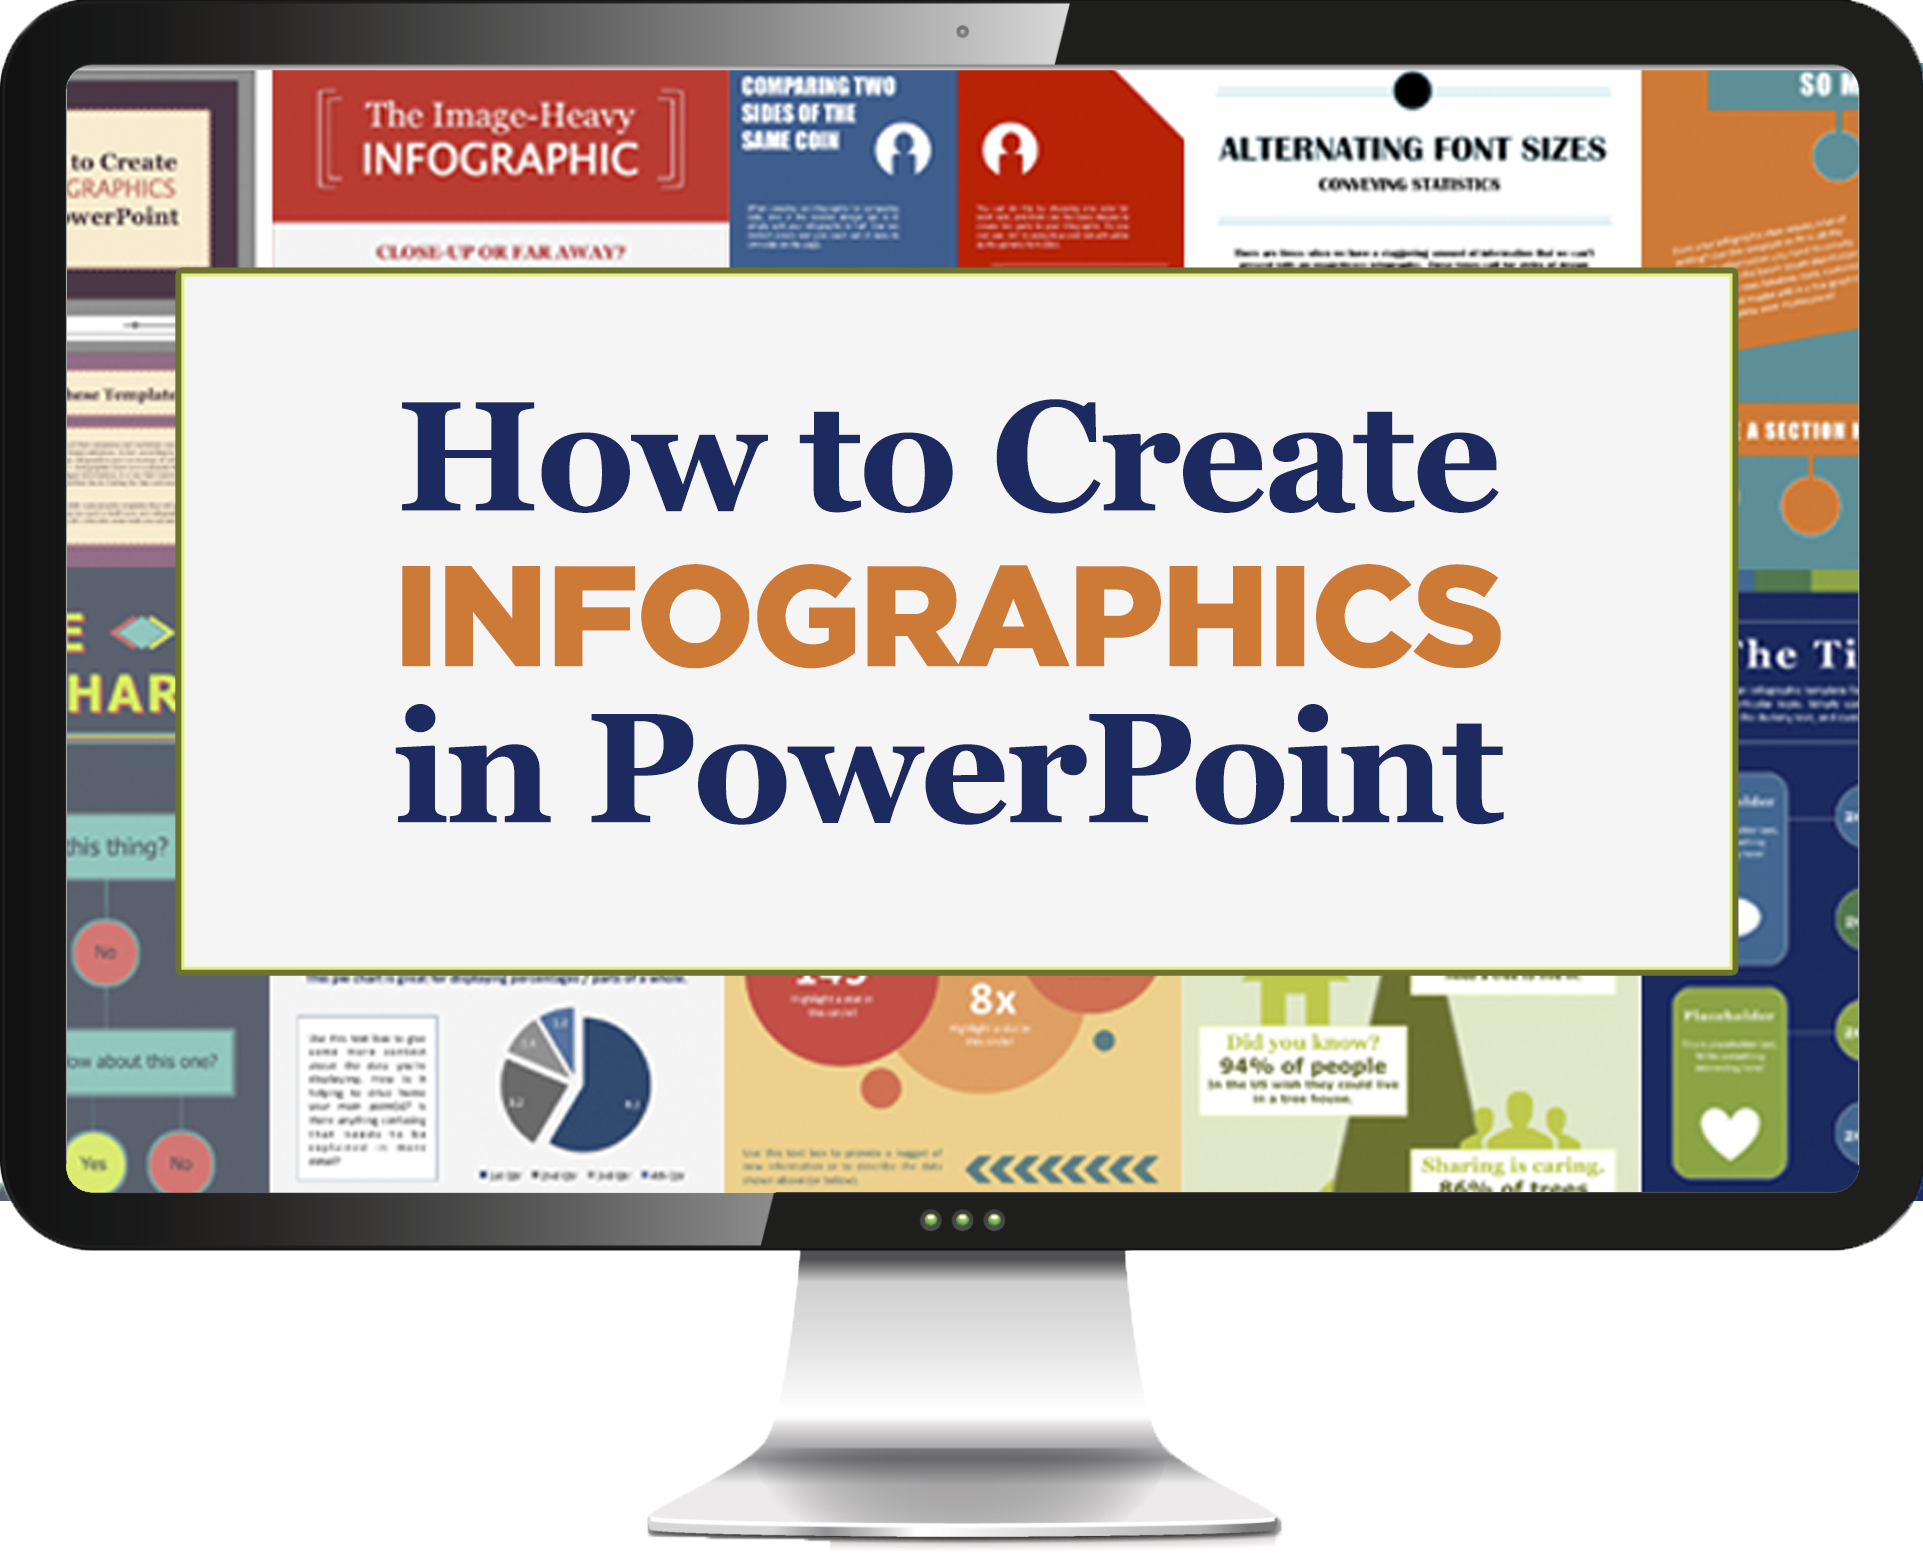 Free Template]: How to Create Infographics in PowerPoint Quickly ...